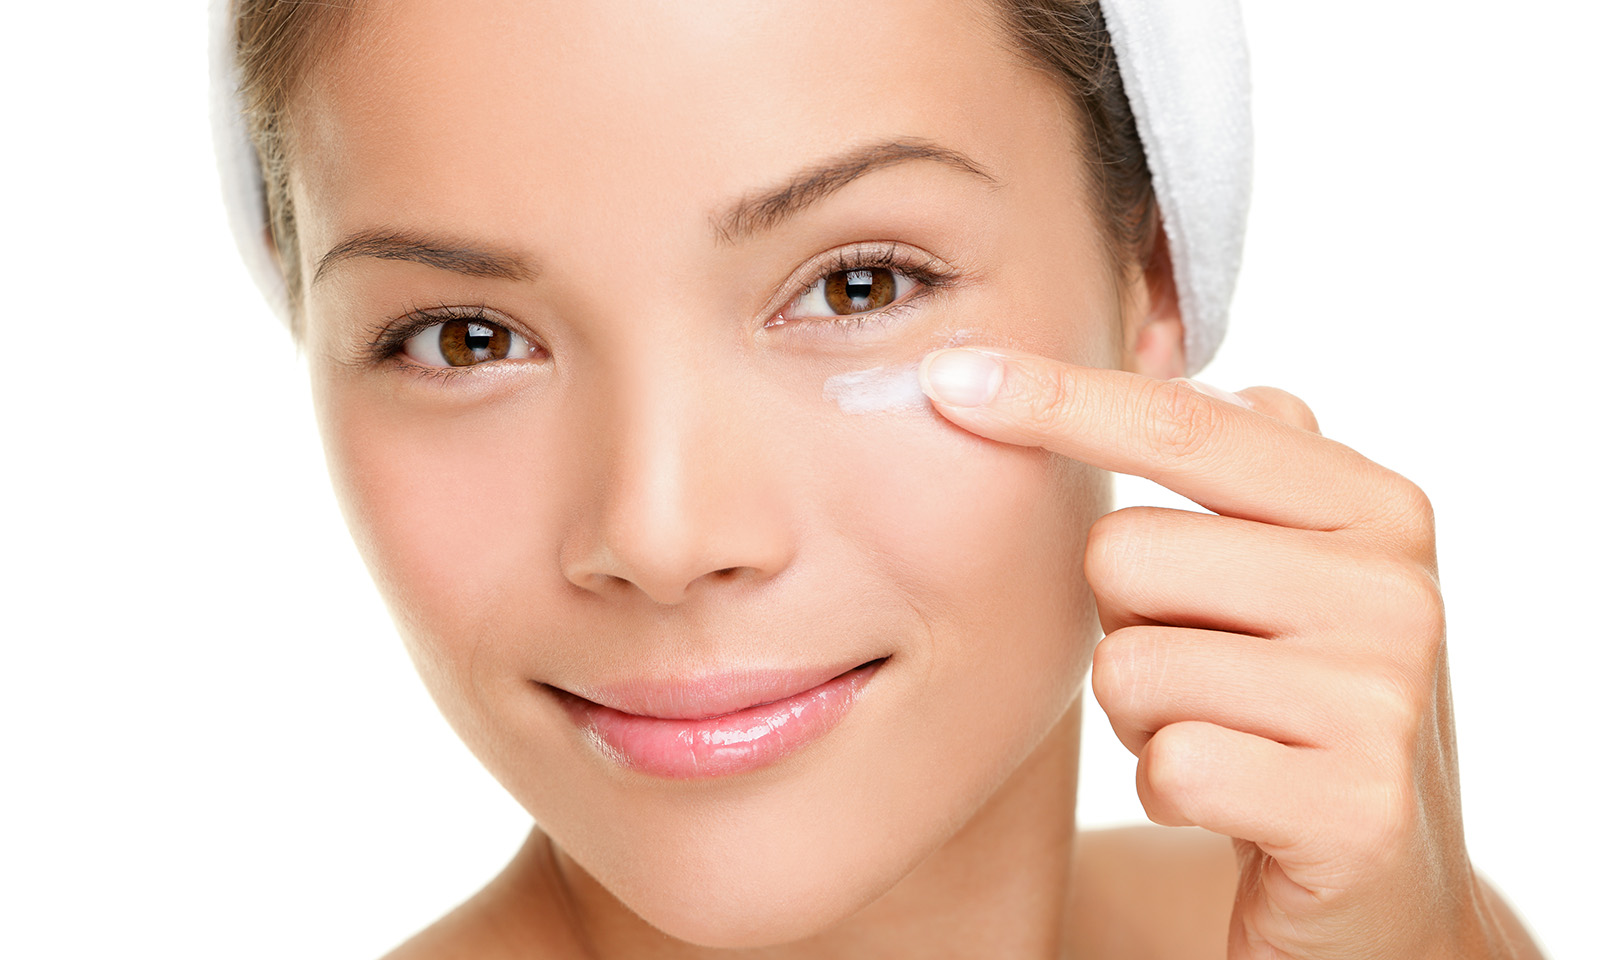 how-to-get-rid-of-under-eye-bags-woman-applying-face-cream-under-eye-main-image